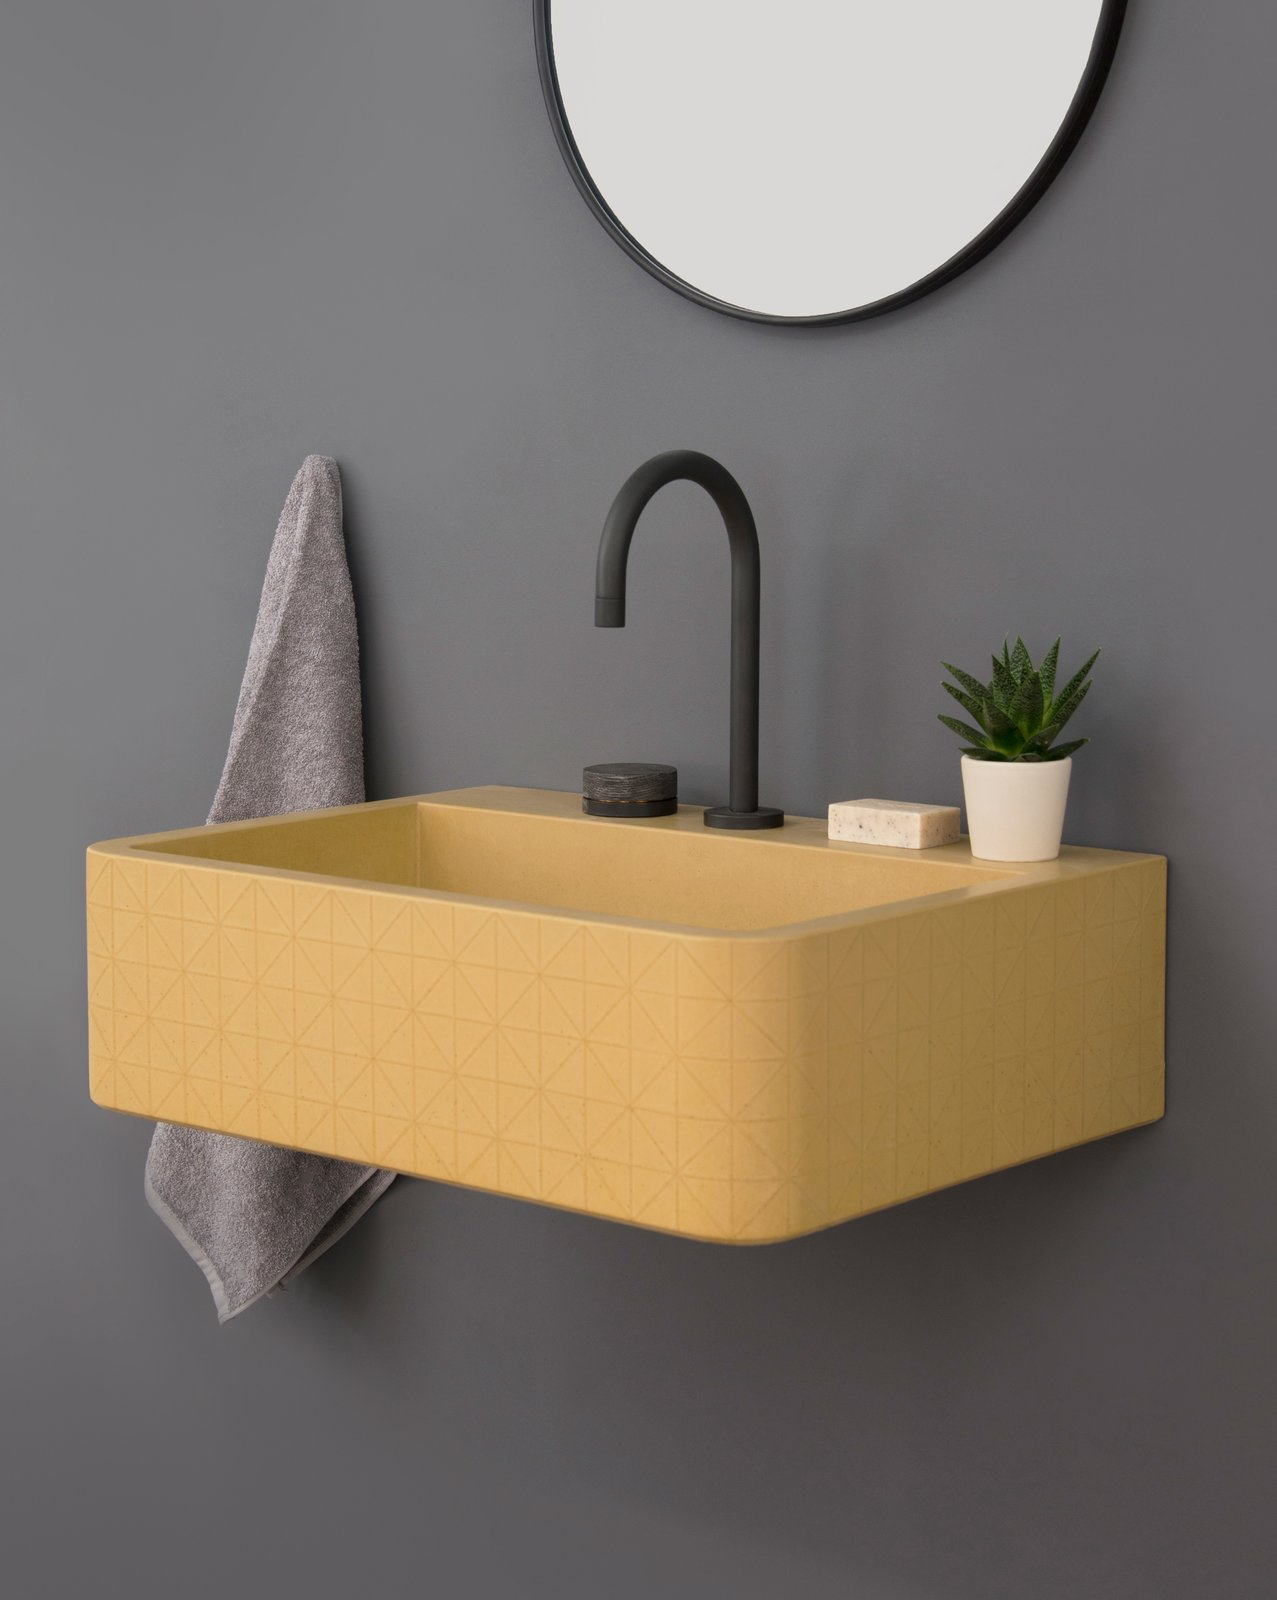 Bath Room and Wall Mount Sink The triangular pattern on the Vos sink adds texture and depth to its appearance.  Photo 3 of 10 in Trend Report: Bathroom Fixtures Go Bold in a Rainbow of Retro Hues